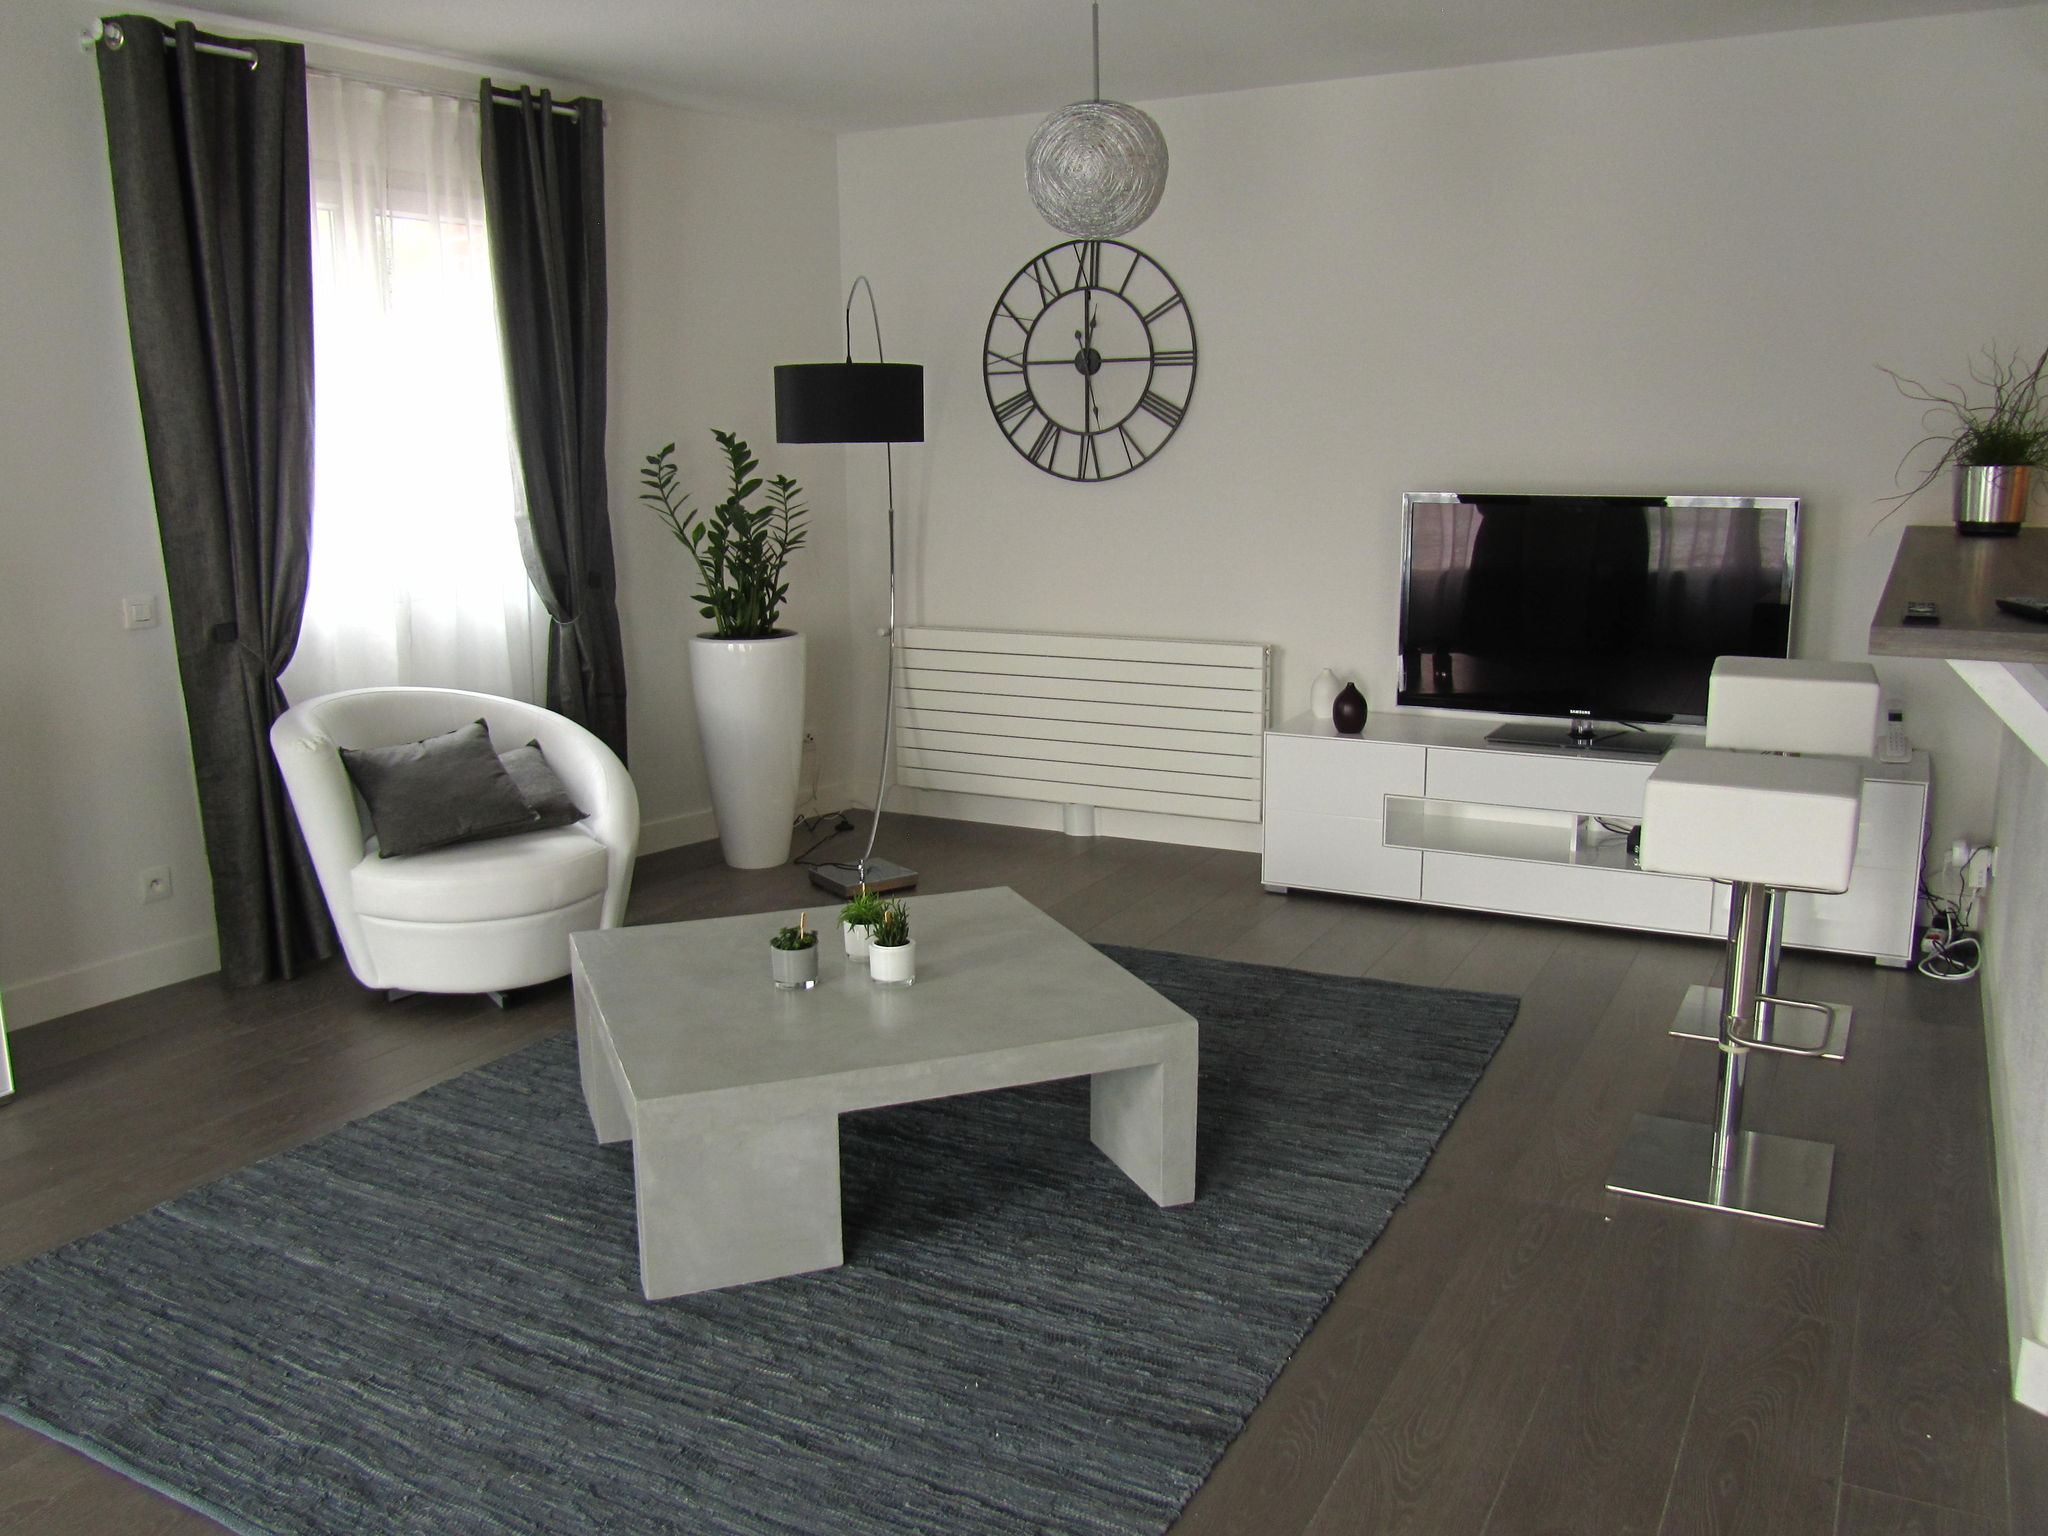 Table de salon en beton cire gris photo de beton cire - Table de salon en beton cire ...